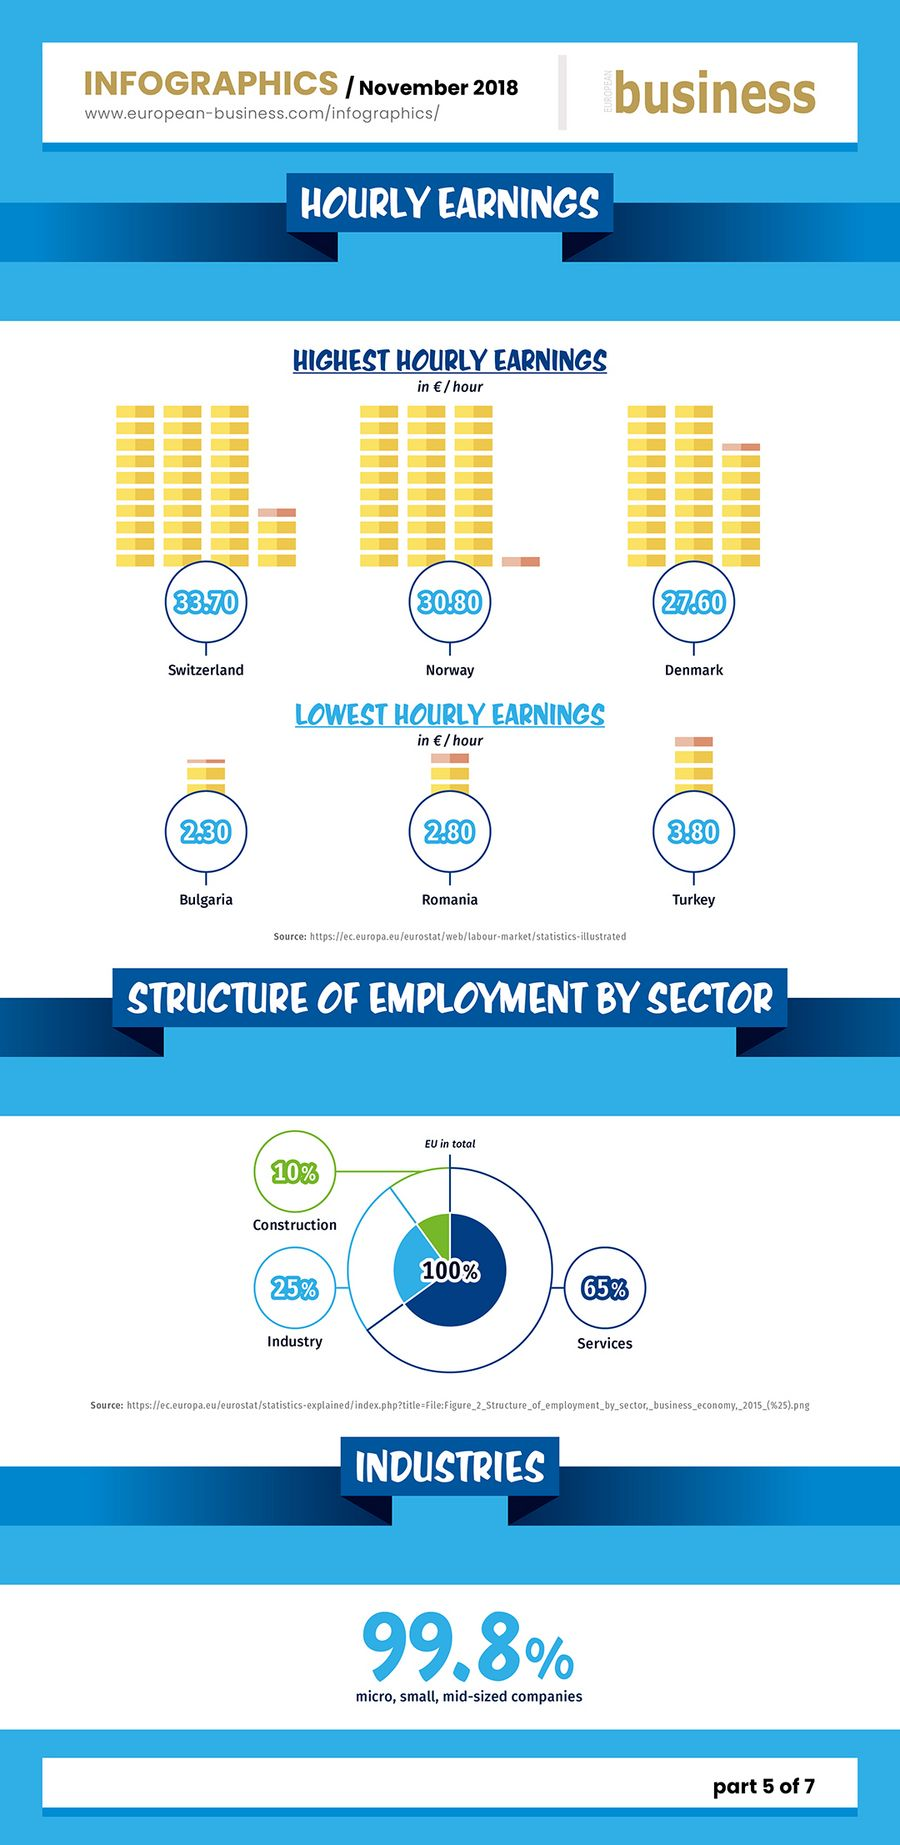 Europe - Facts about business and work